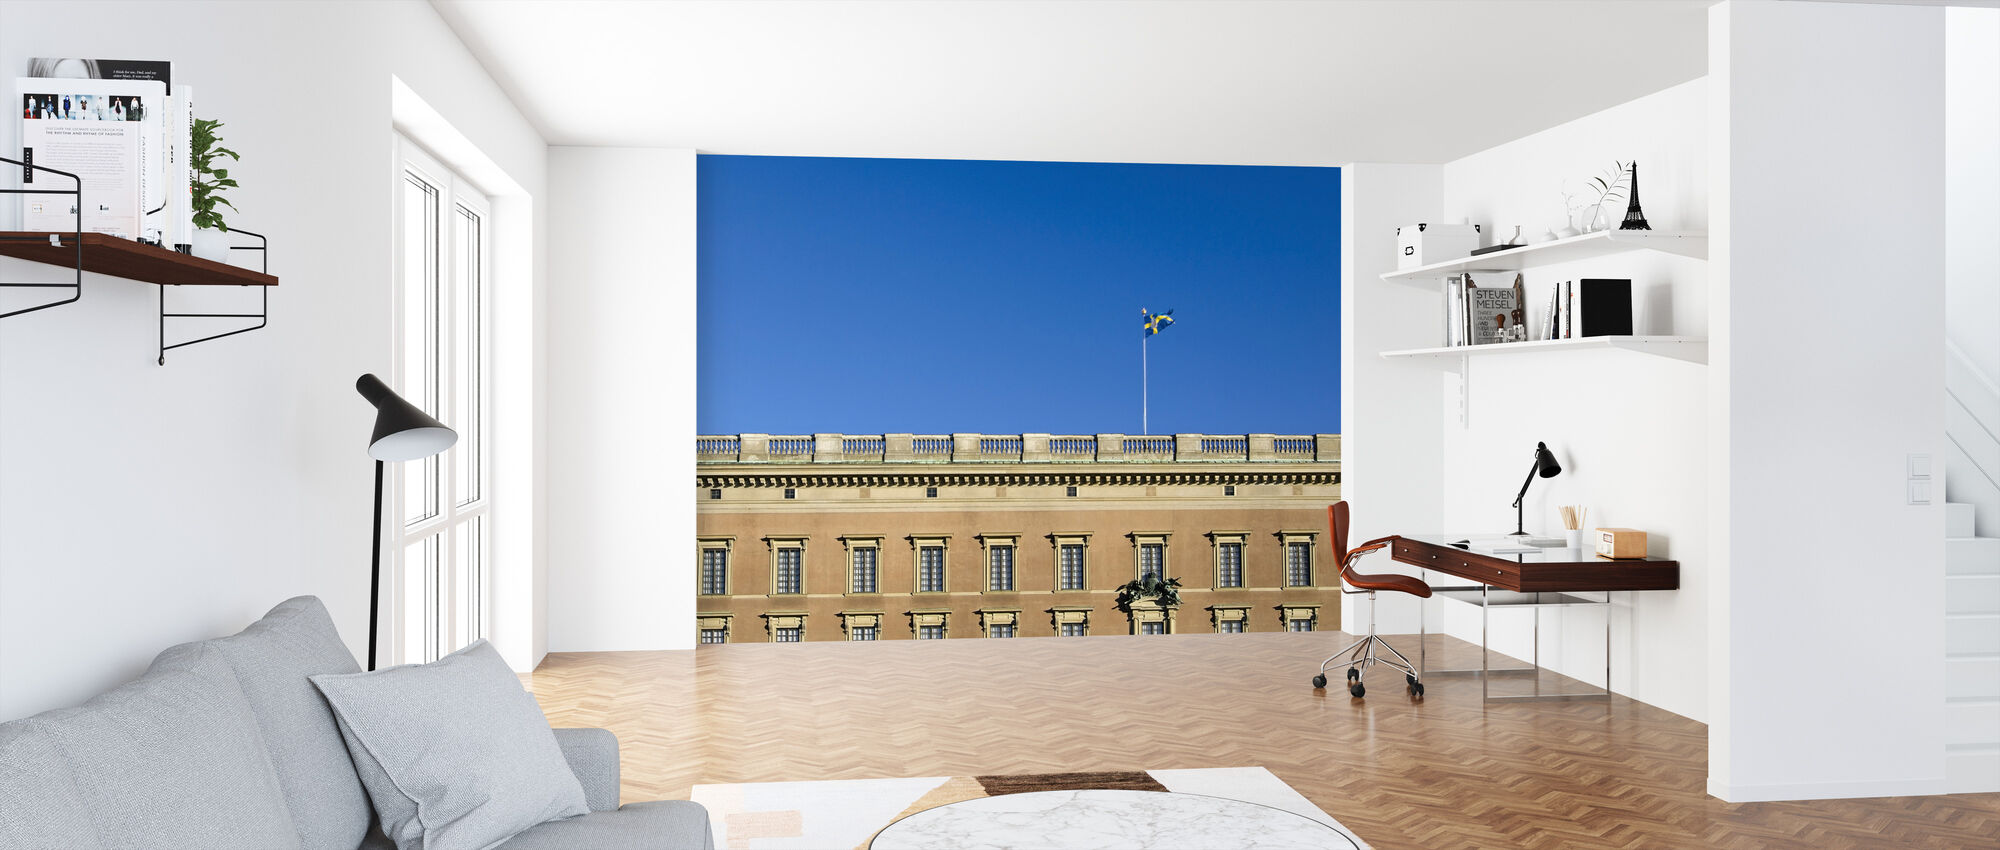 Details of Stockholm Palace - Wallpaper - Office